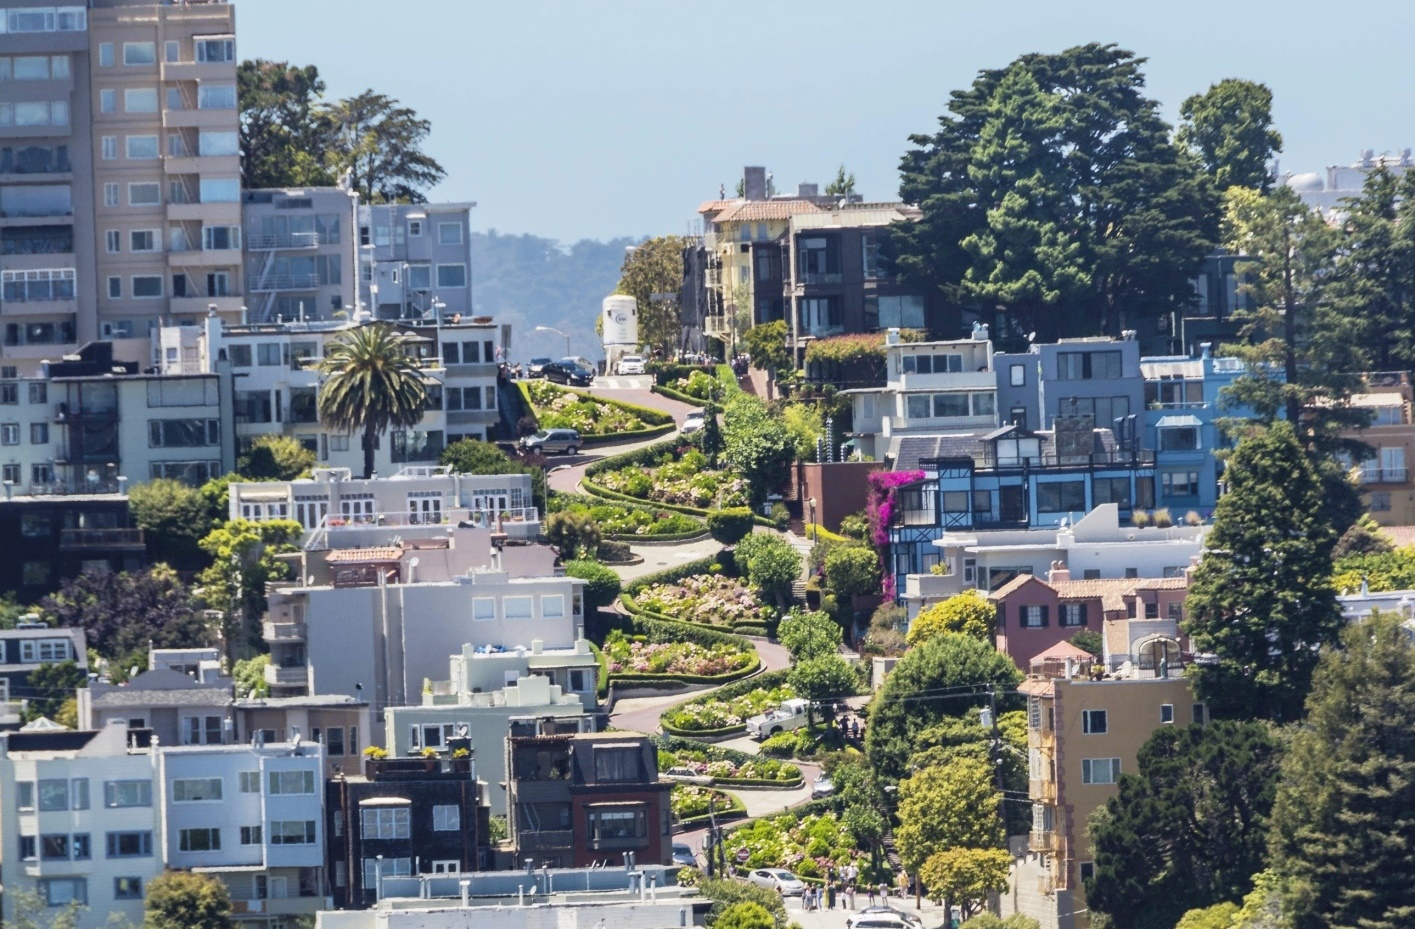 The zigzag street in San Francisco